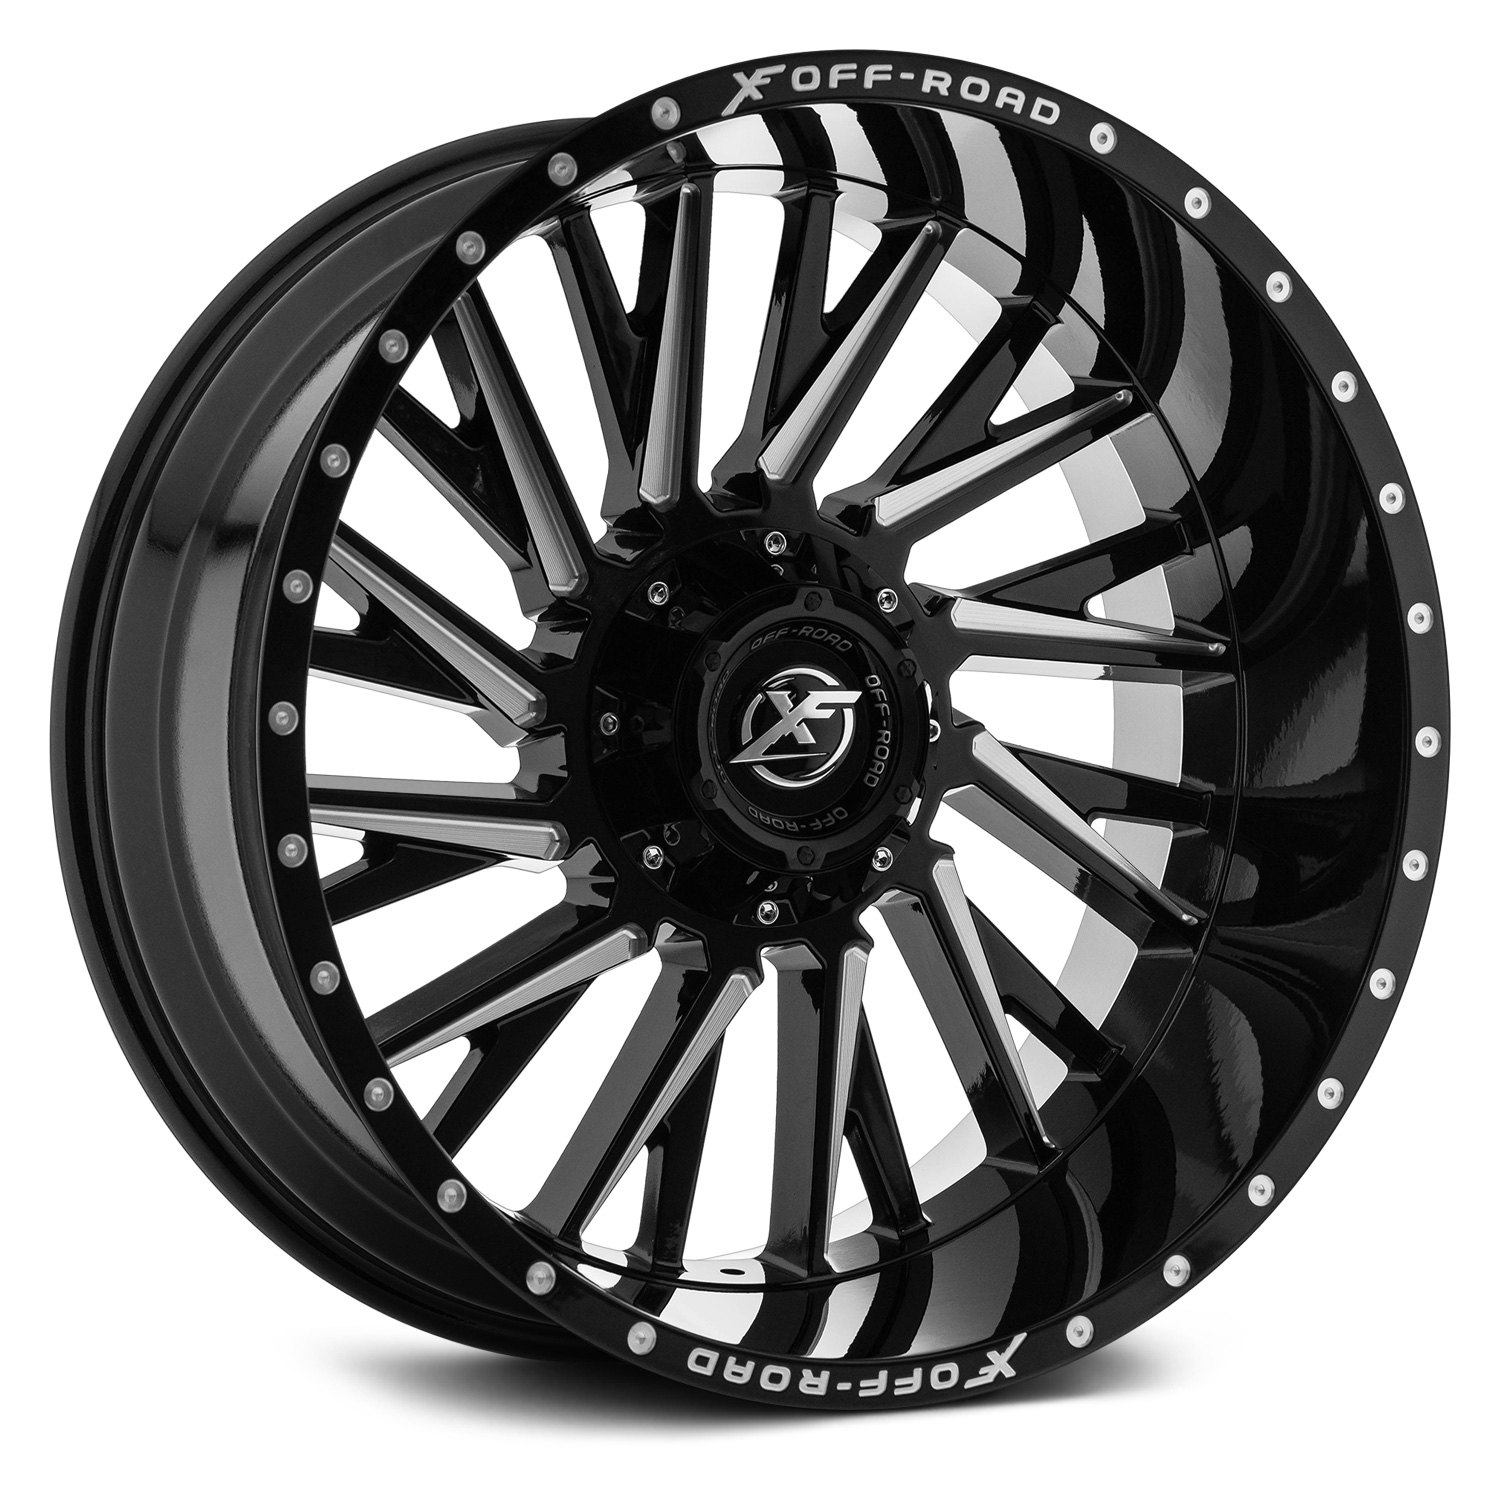 Xf Off Road Xf 226 Wheels Gloss Black With Milled Accents And Dots Rims